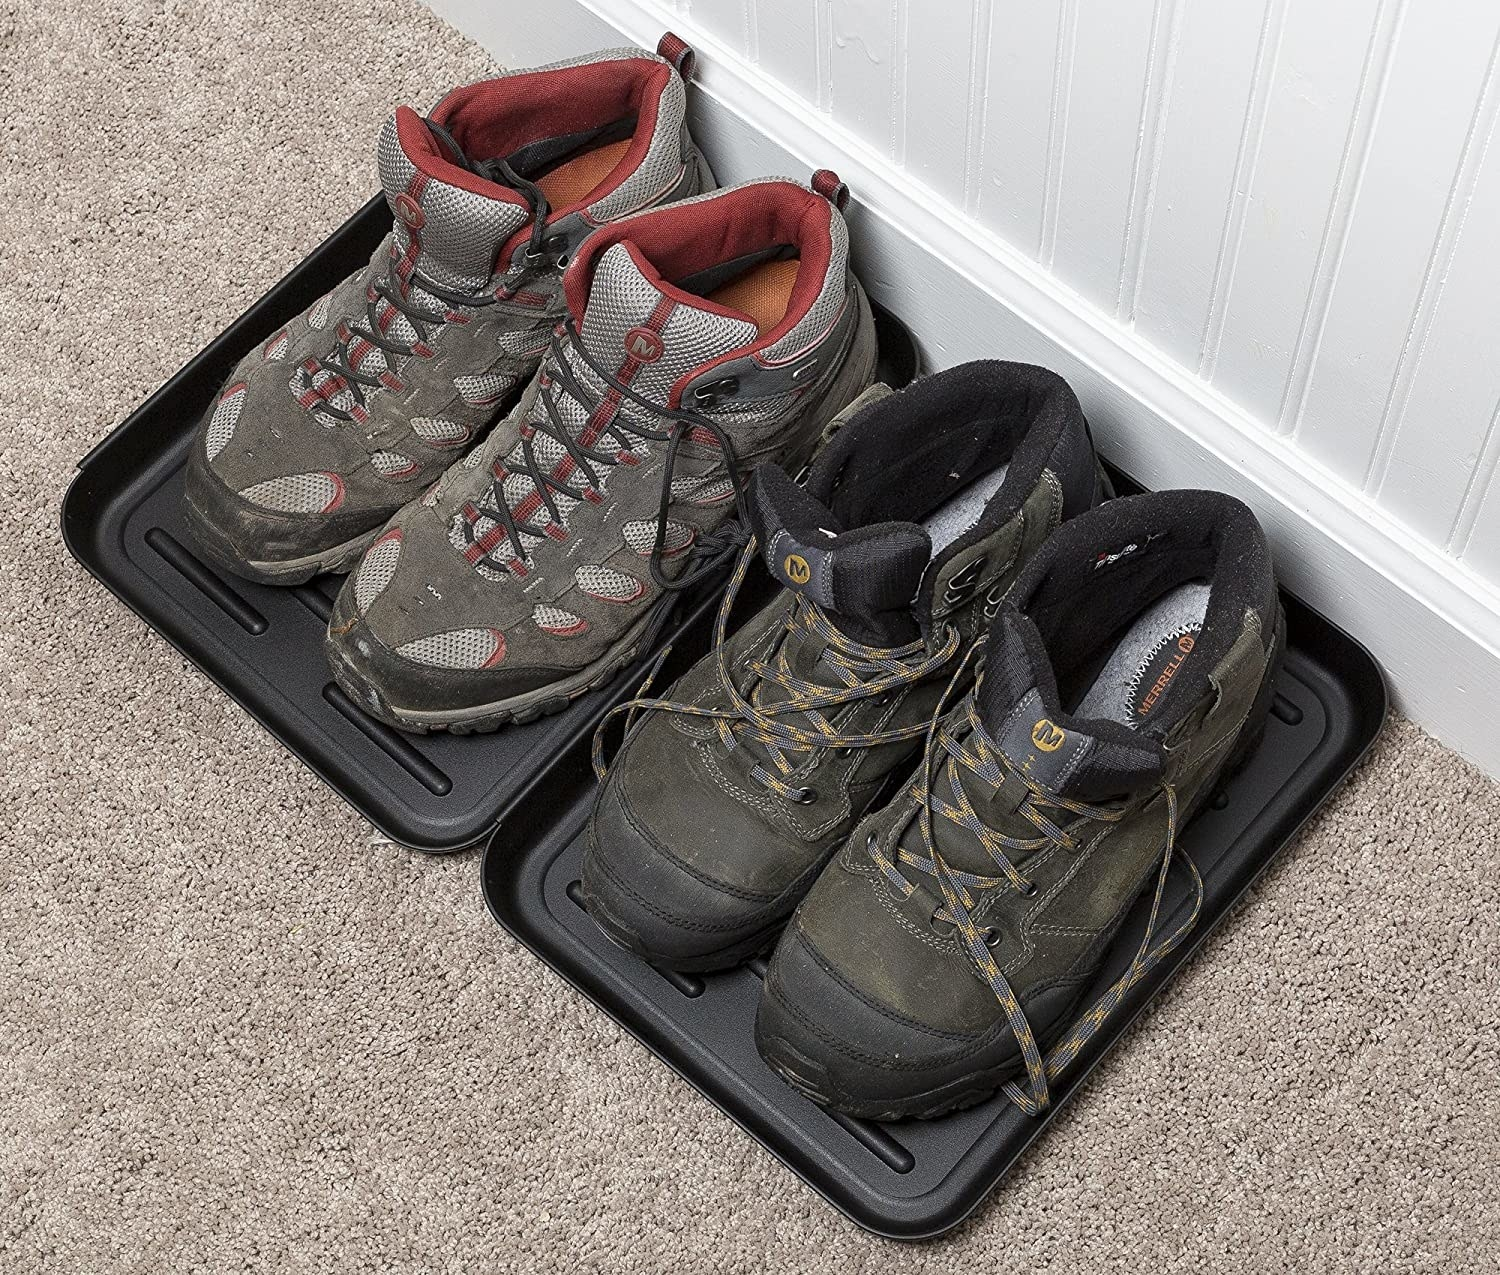 Two pairs of boots sitting in two small shoe trays